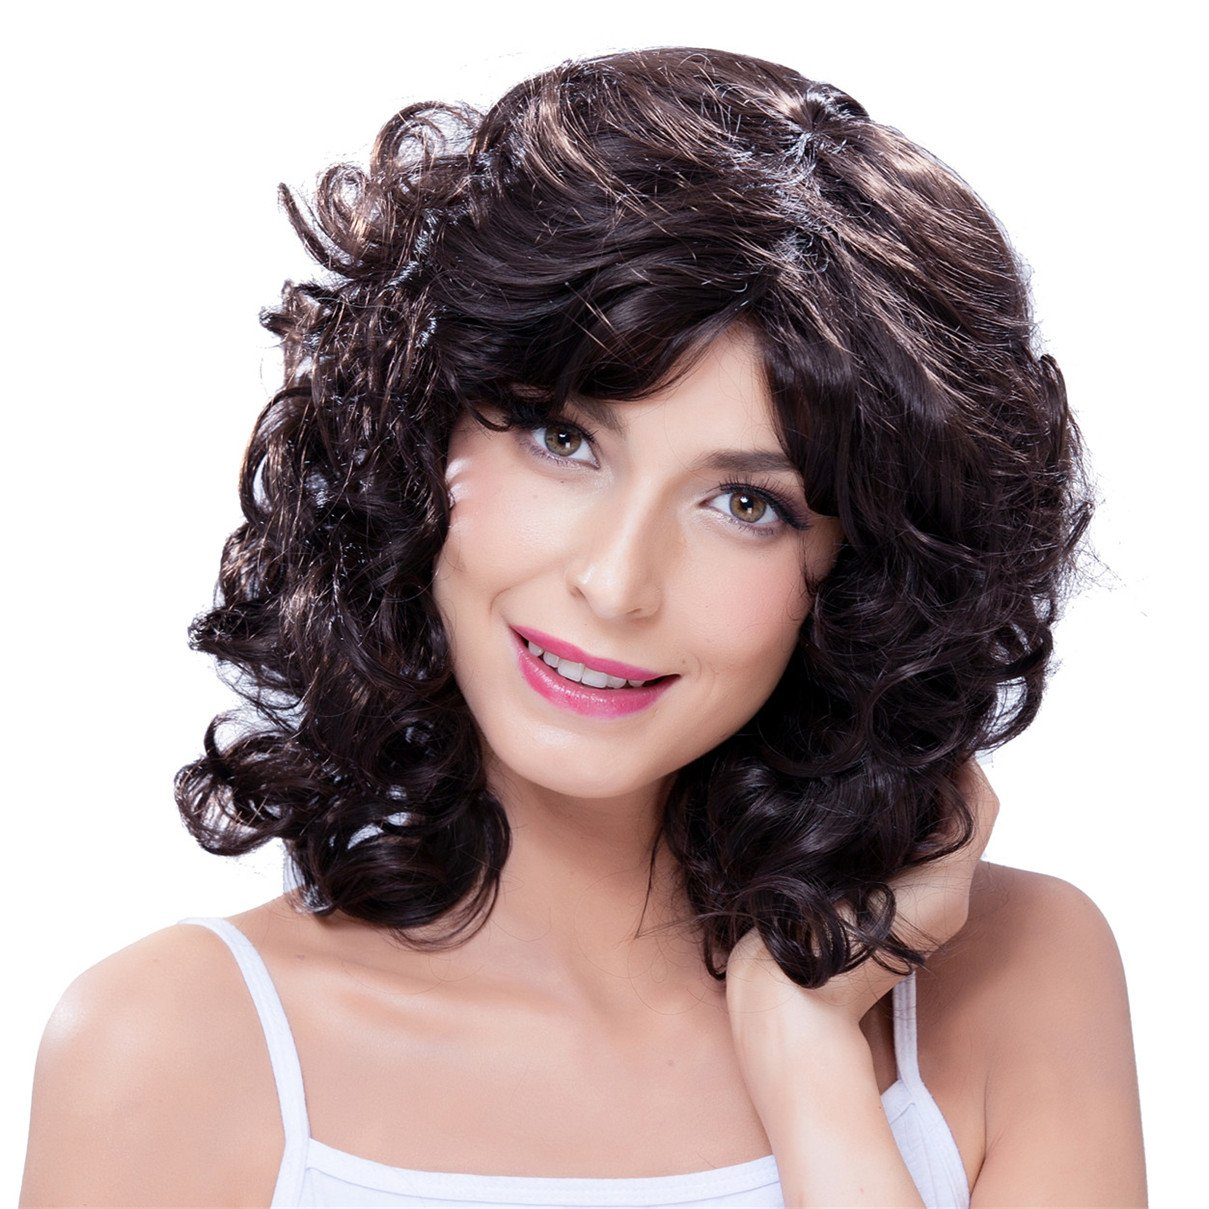 Buy Atozwig Womens Short Curly Wig For Black Women African American Short Bob Hairstyles Cheap Synthetic Natural Black Wig Afro Pelucas In Cheap Price On Alibaba Com